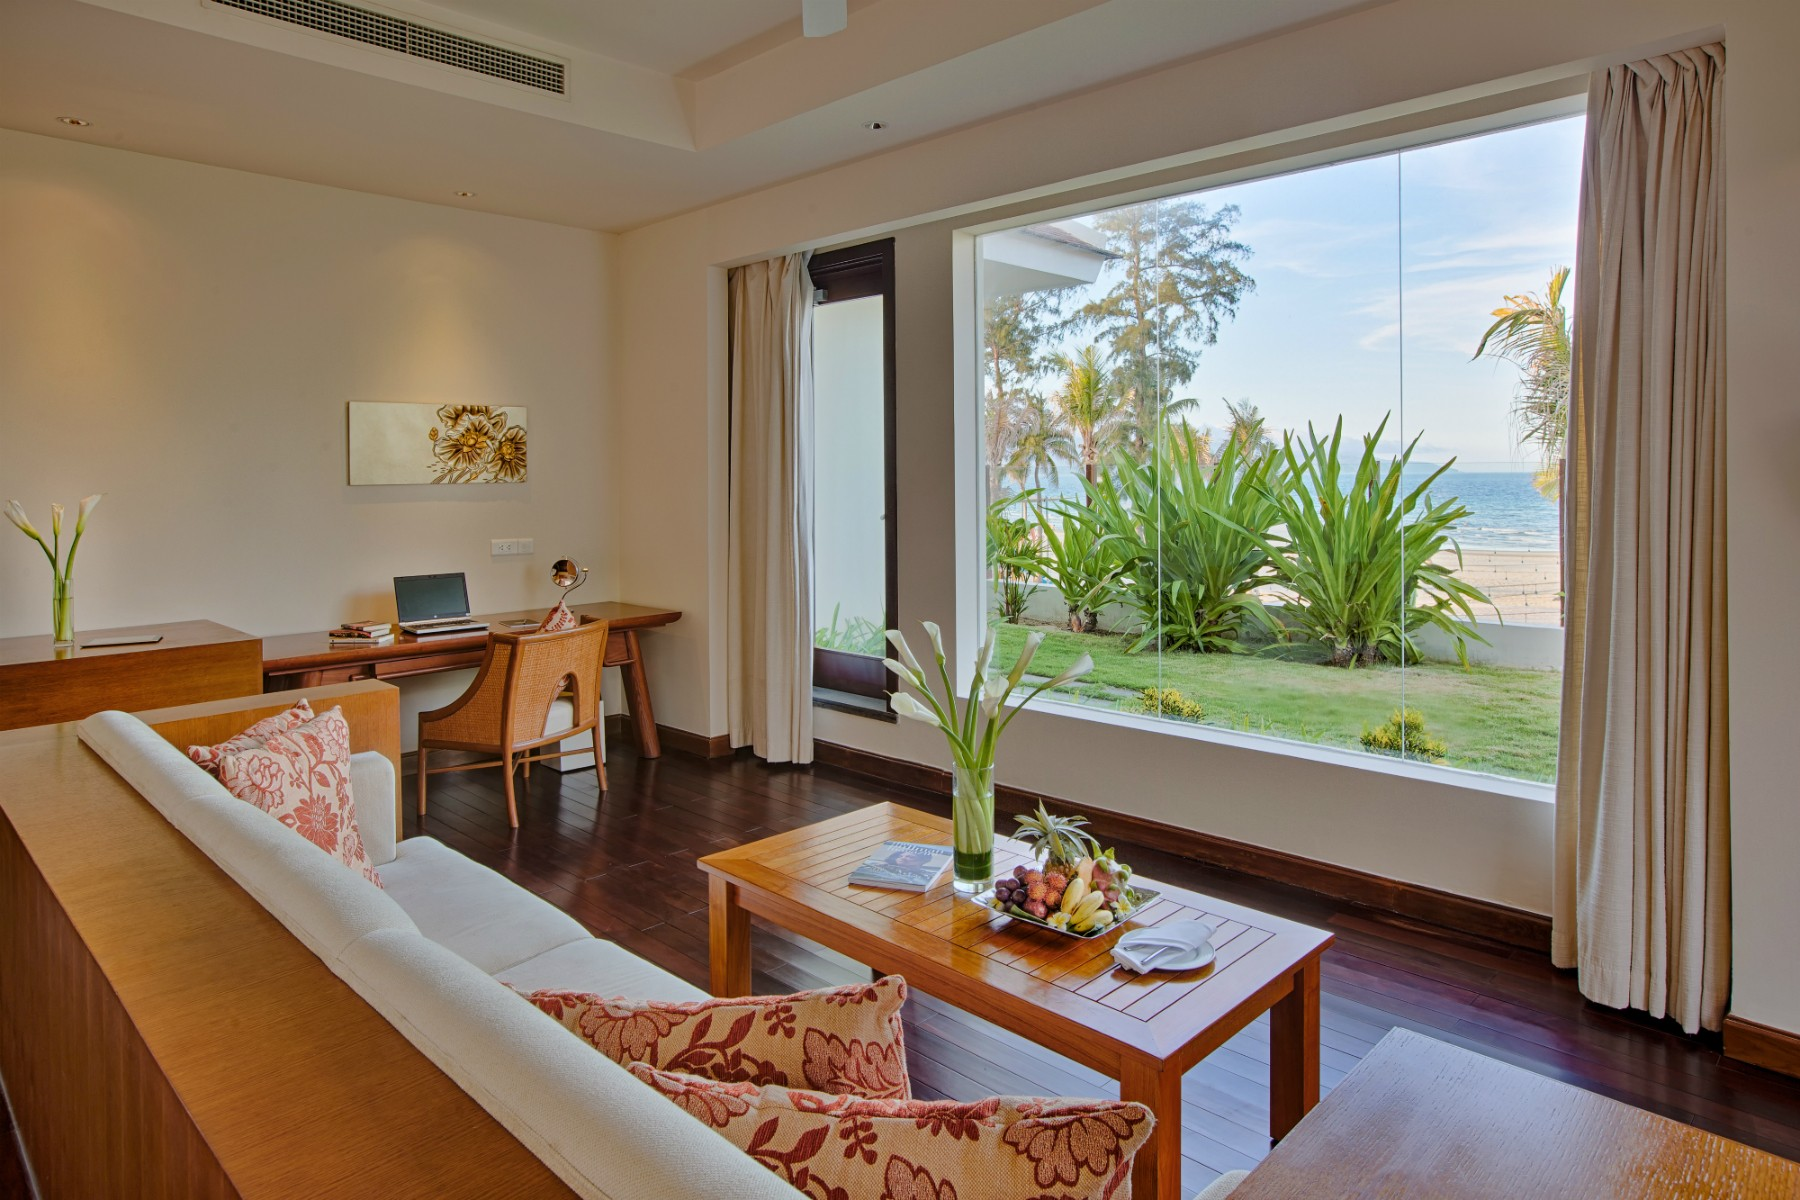 Pullman danang beach resort two bedroom cottage 5 star for 2 bedroom cottage